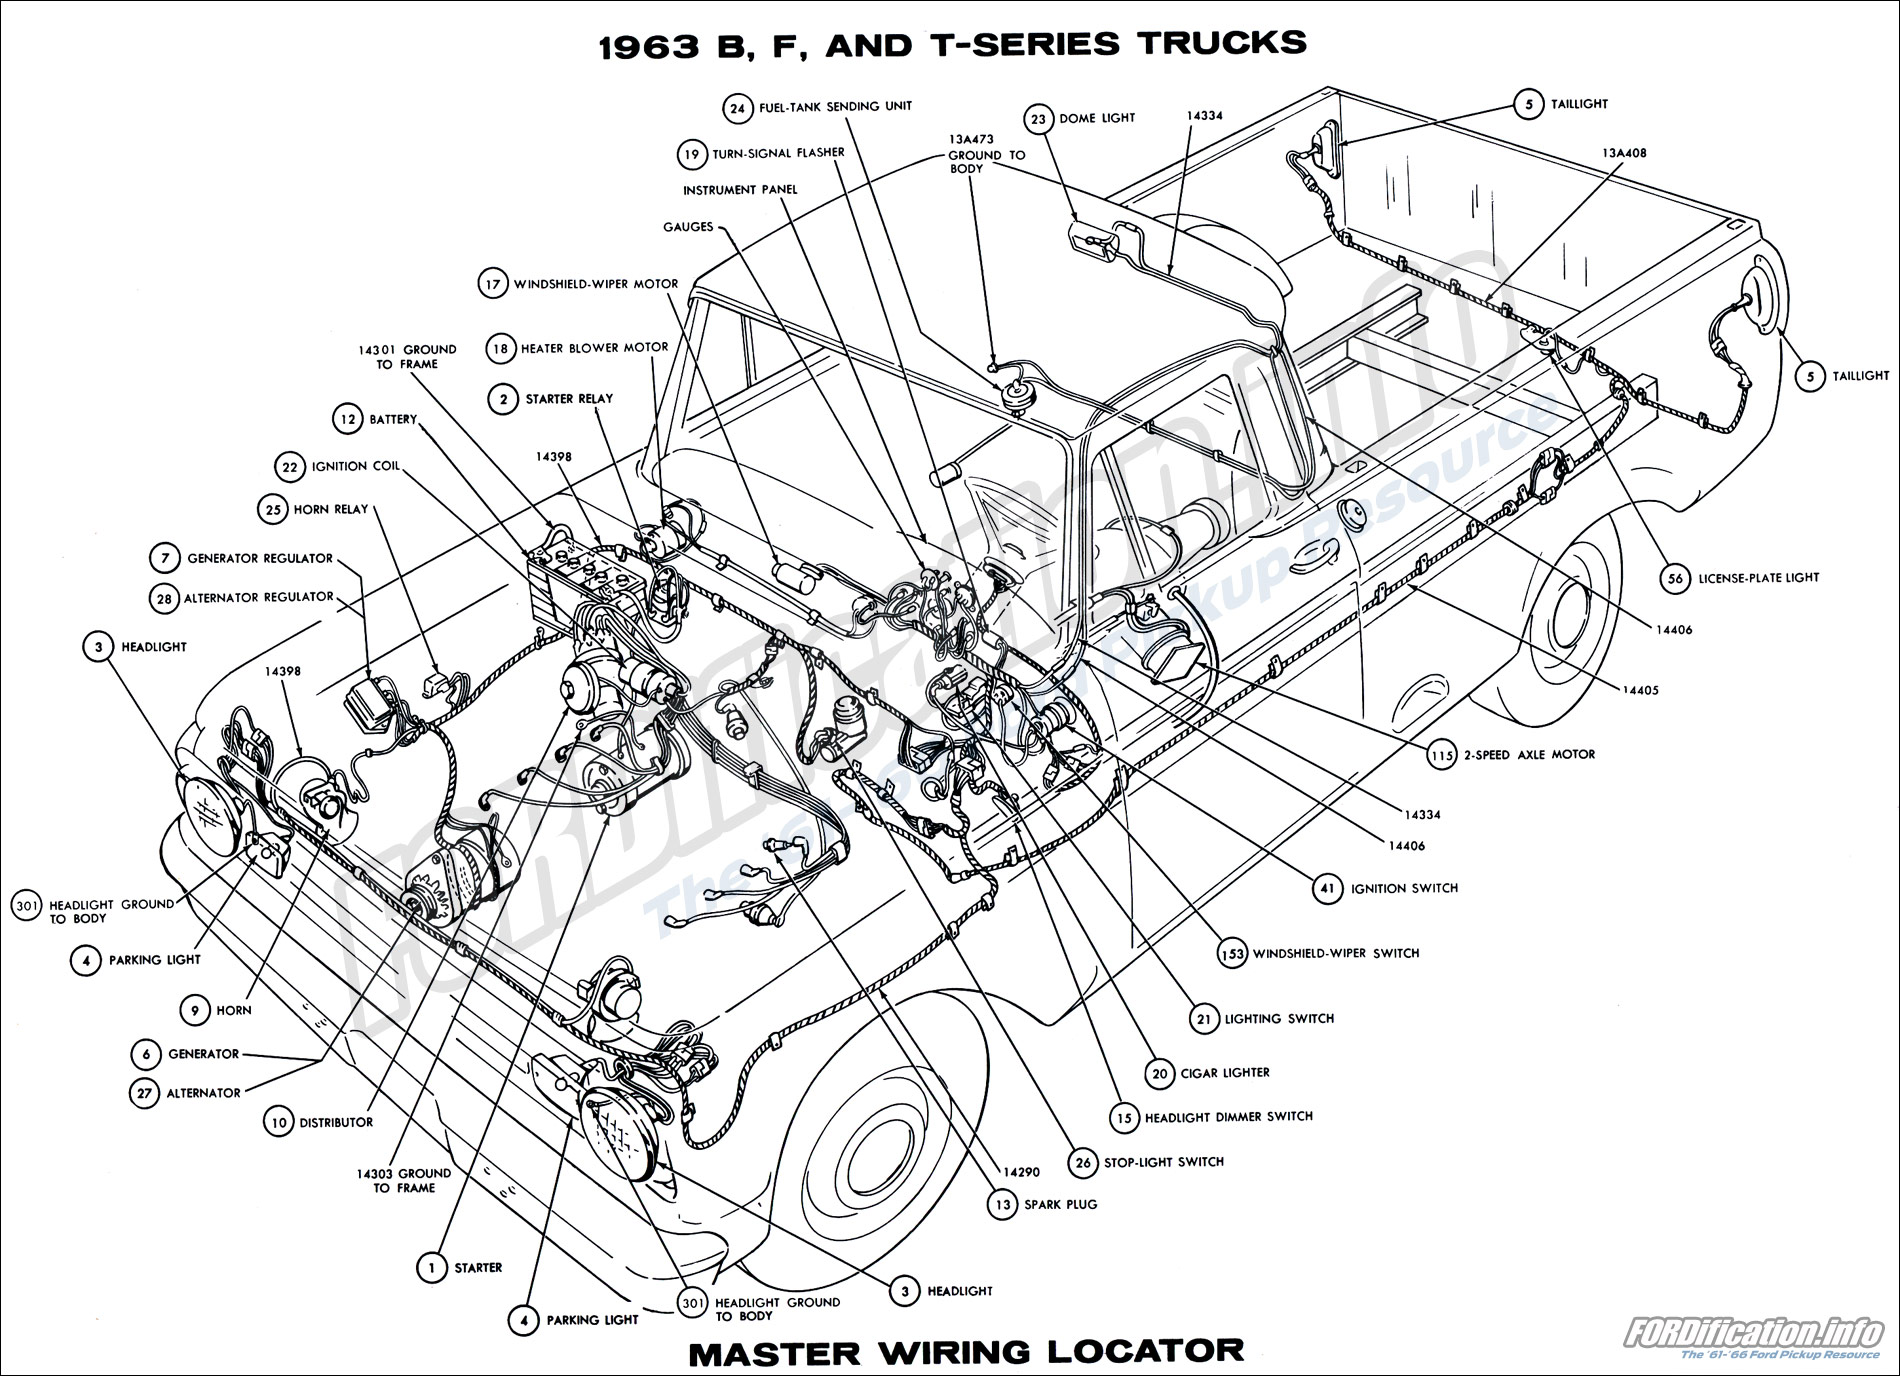 hight resolution of 1962 ford truck wiring diagram wiring diagrams konsultford truck wiring schematics wiring diagram dat 1962 ford